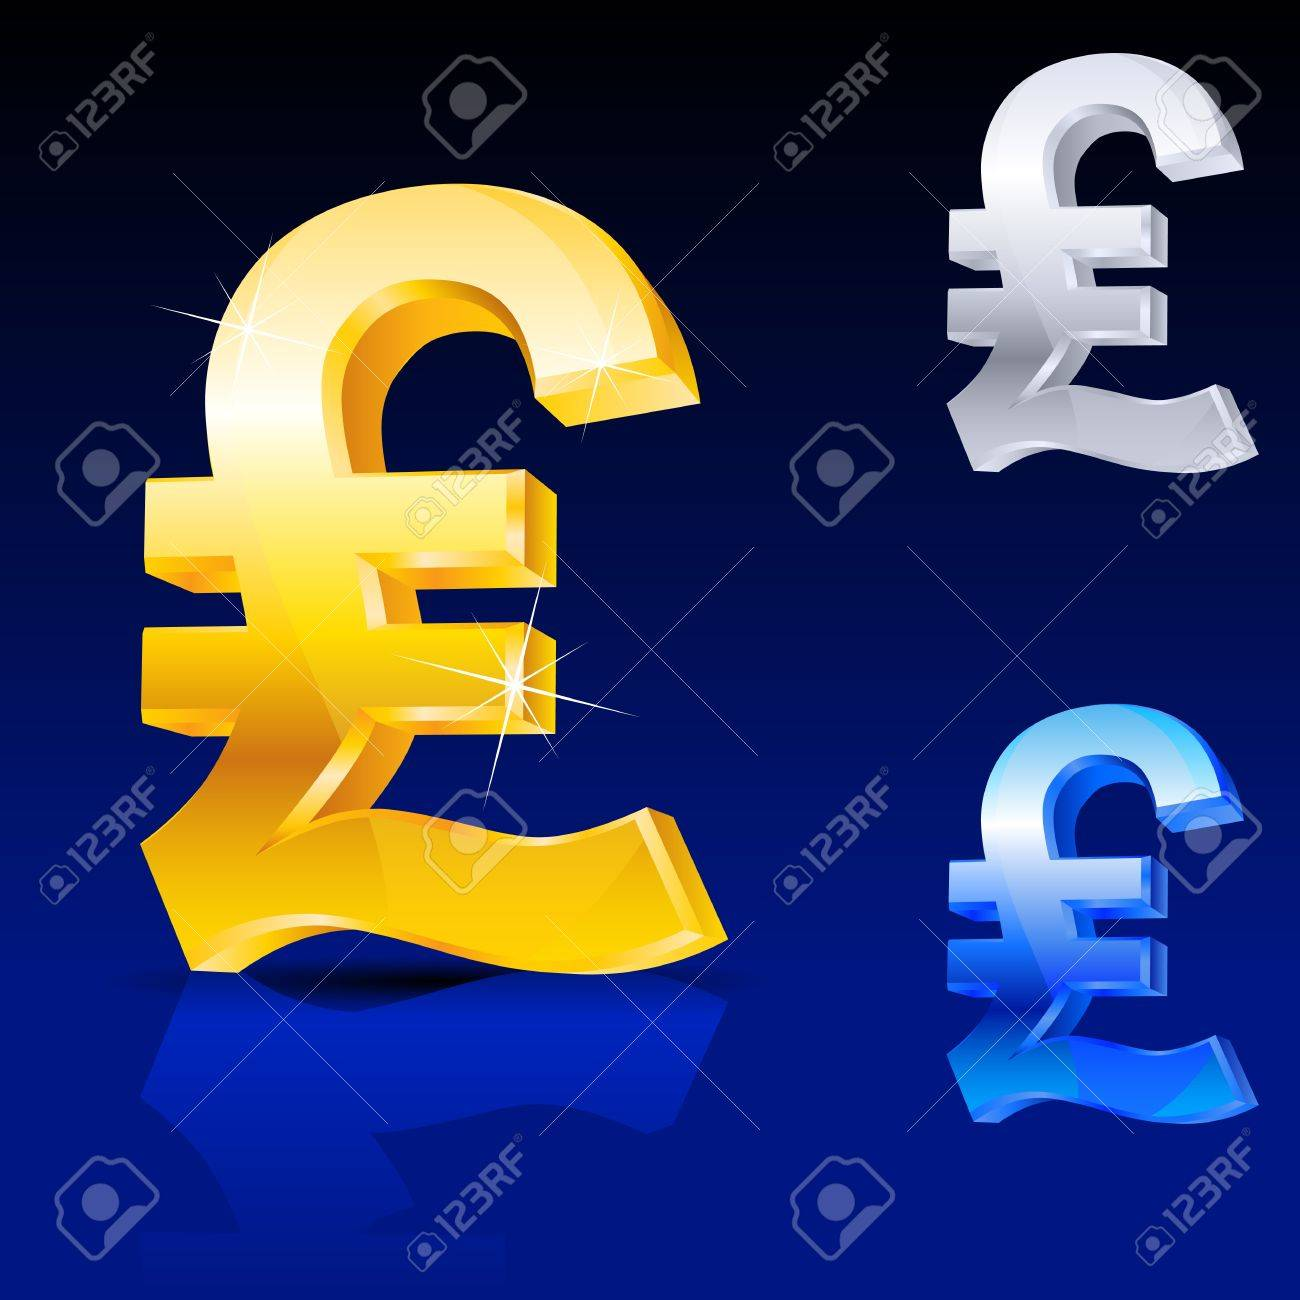 Abstract pound sign. Illustration on blue background for design Stock Photo - 11350955